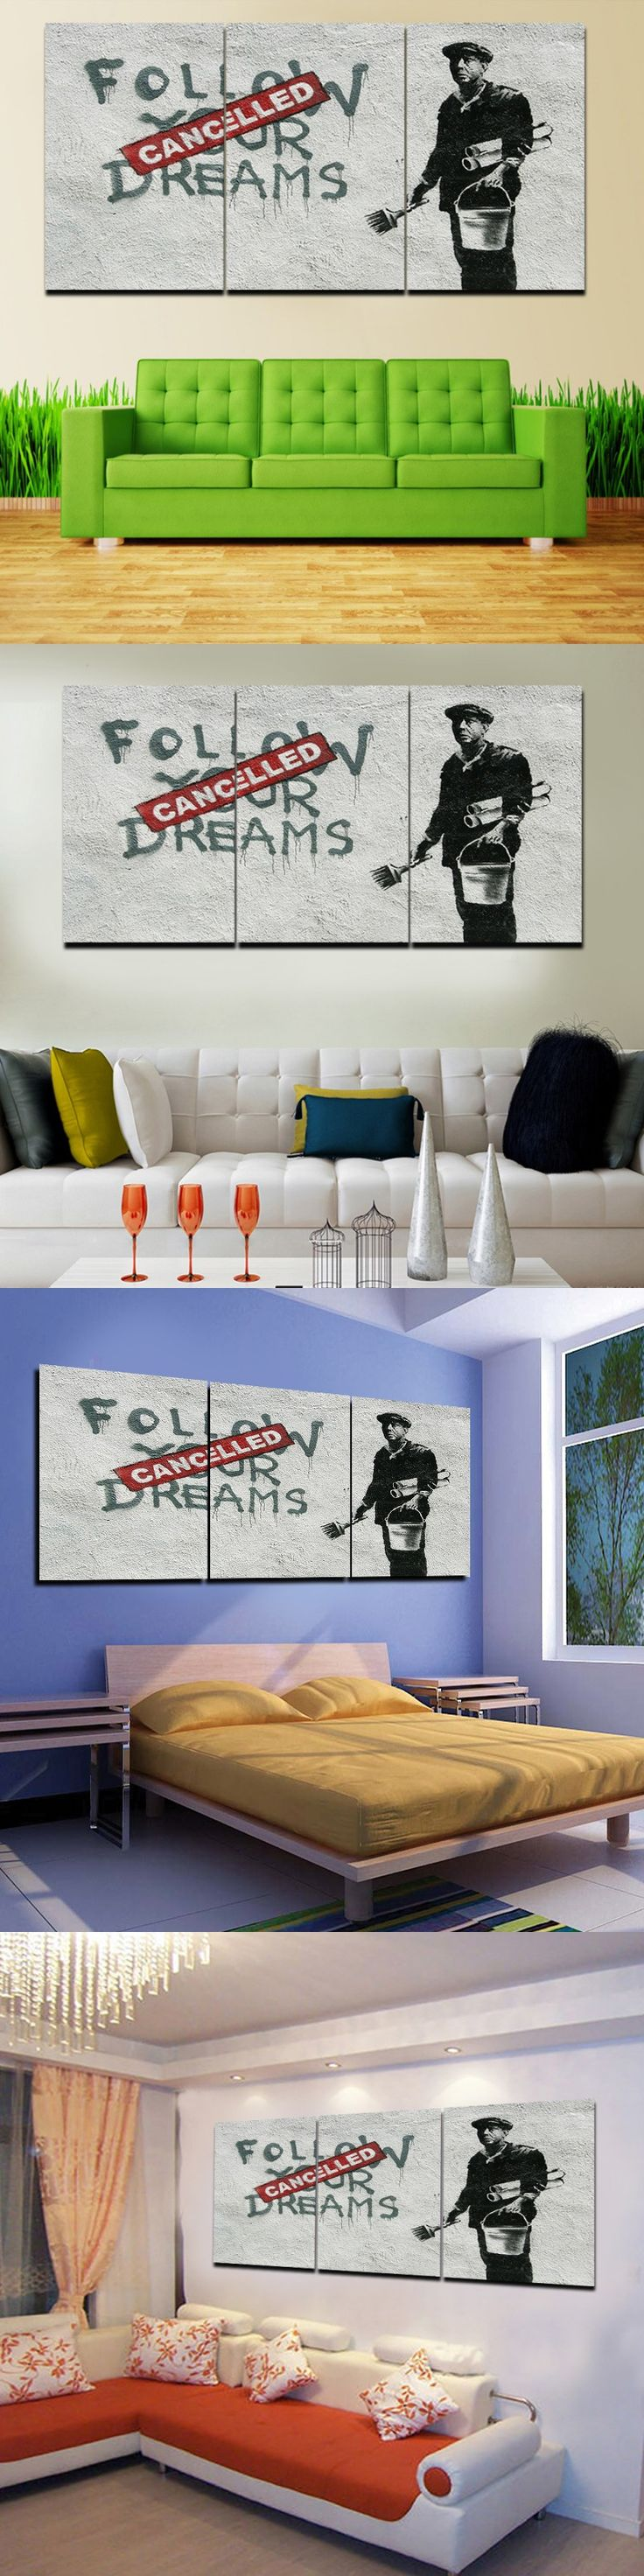 2016 Sale No Paintings Cuadros Hot 3 Pcs Banksy Wall Art Modern Hd Picture Home Decoration Living Room Canvas Print Painting $20.89